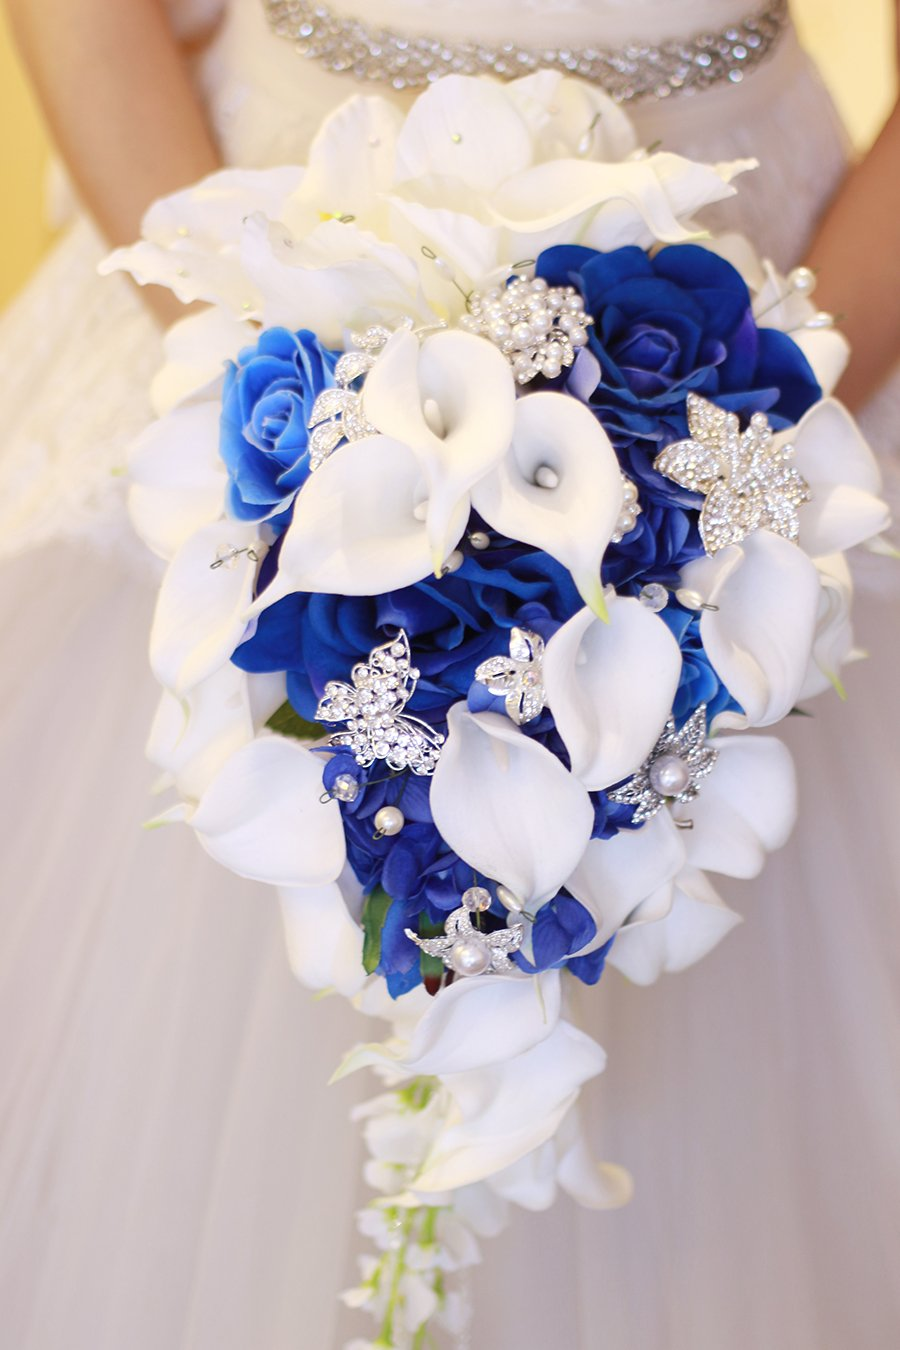 IFFO Royal Blue Bouquet, White Calla Lily Bridal Bouquet, Water Drops Waterfall Shape, Luxury Jewelry Bouquet Romantic Wedding (have jewelry) by IFFO